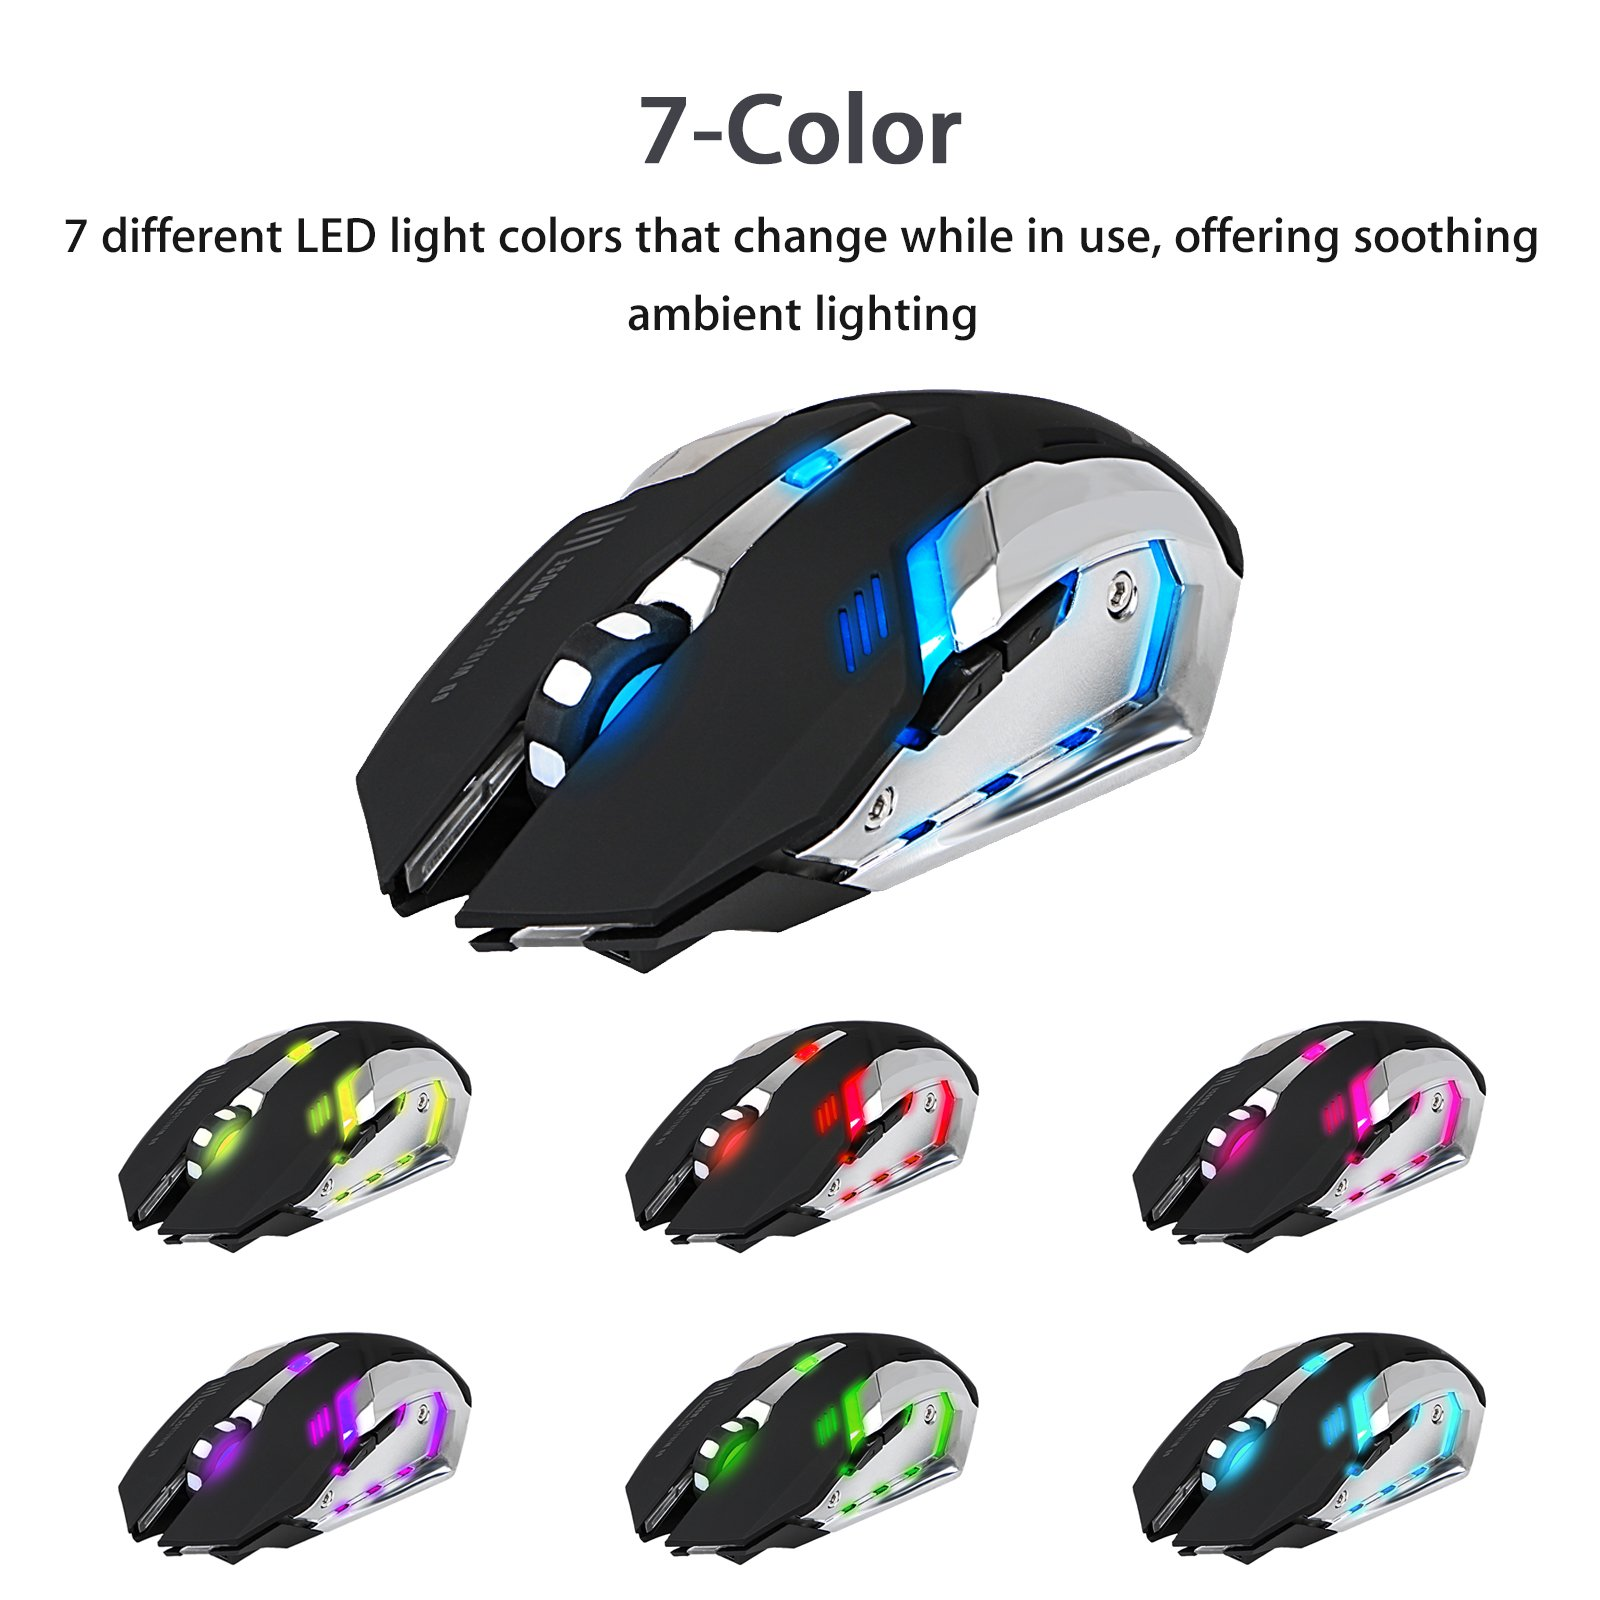 Wireless Optical Gaming Mouse with USB Receiver LinkStyle Color Changing Wireless Laptop Mouse, Rechargeable Game Mice with 4 Adjustable CPI Levels for PC, Laptop, Computer, Macbook & Gaming Players by LinkStyle (Image #2)